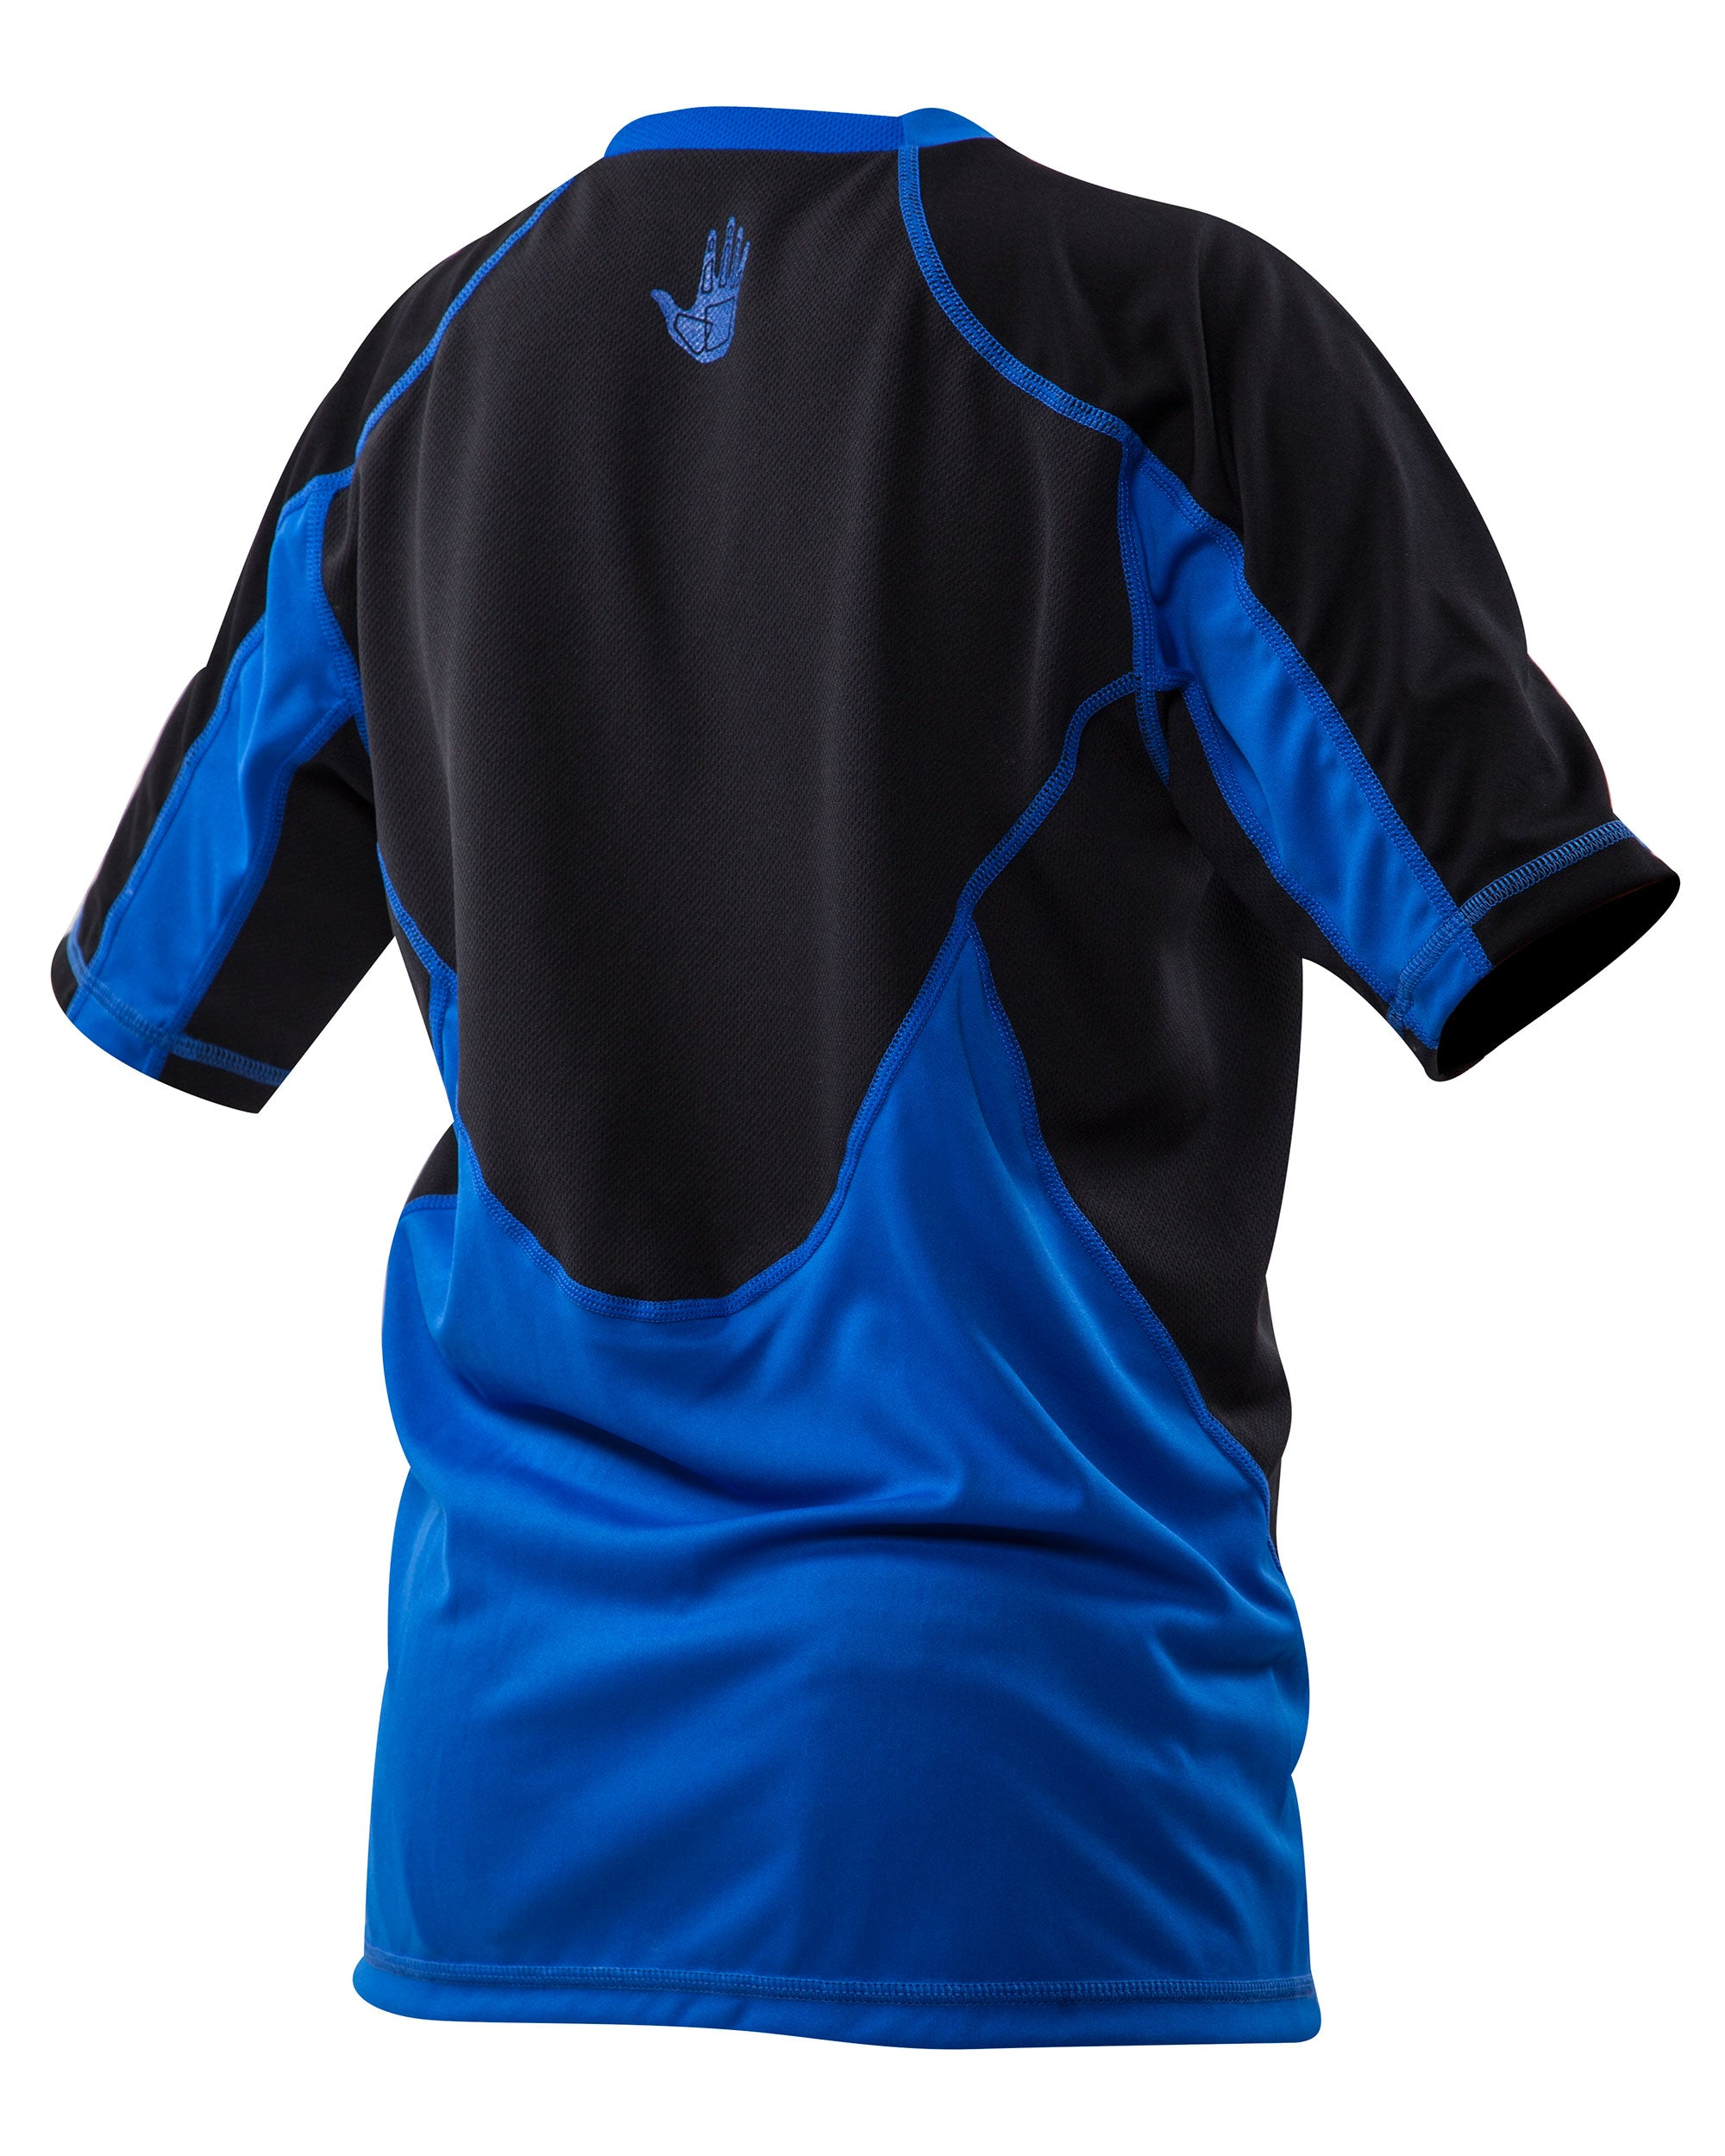 Youth Loosefit Short-Arm Rash Guard - Royal